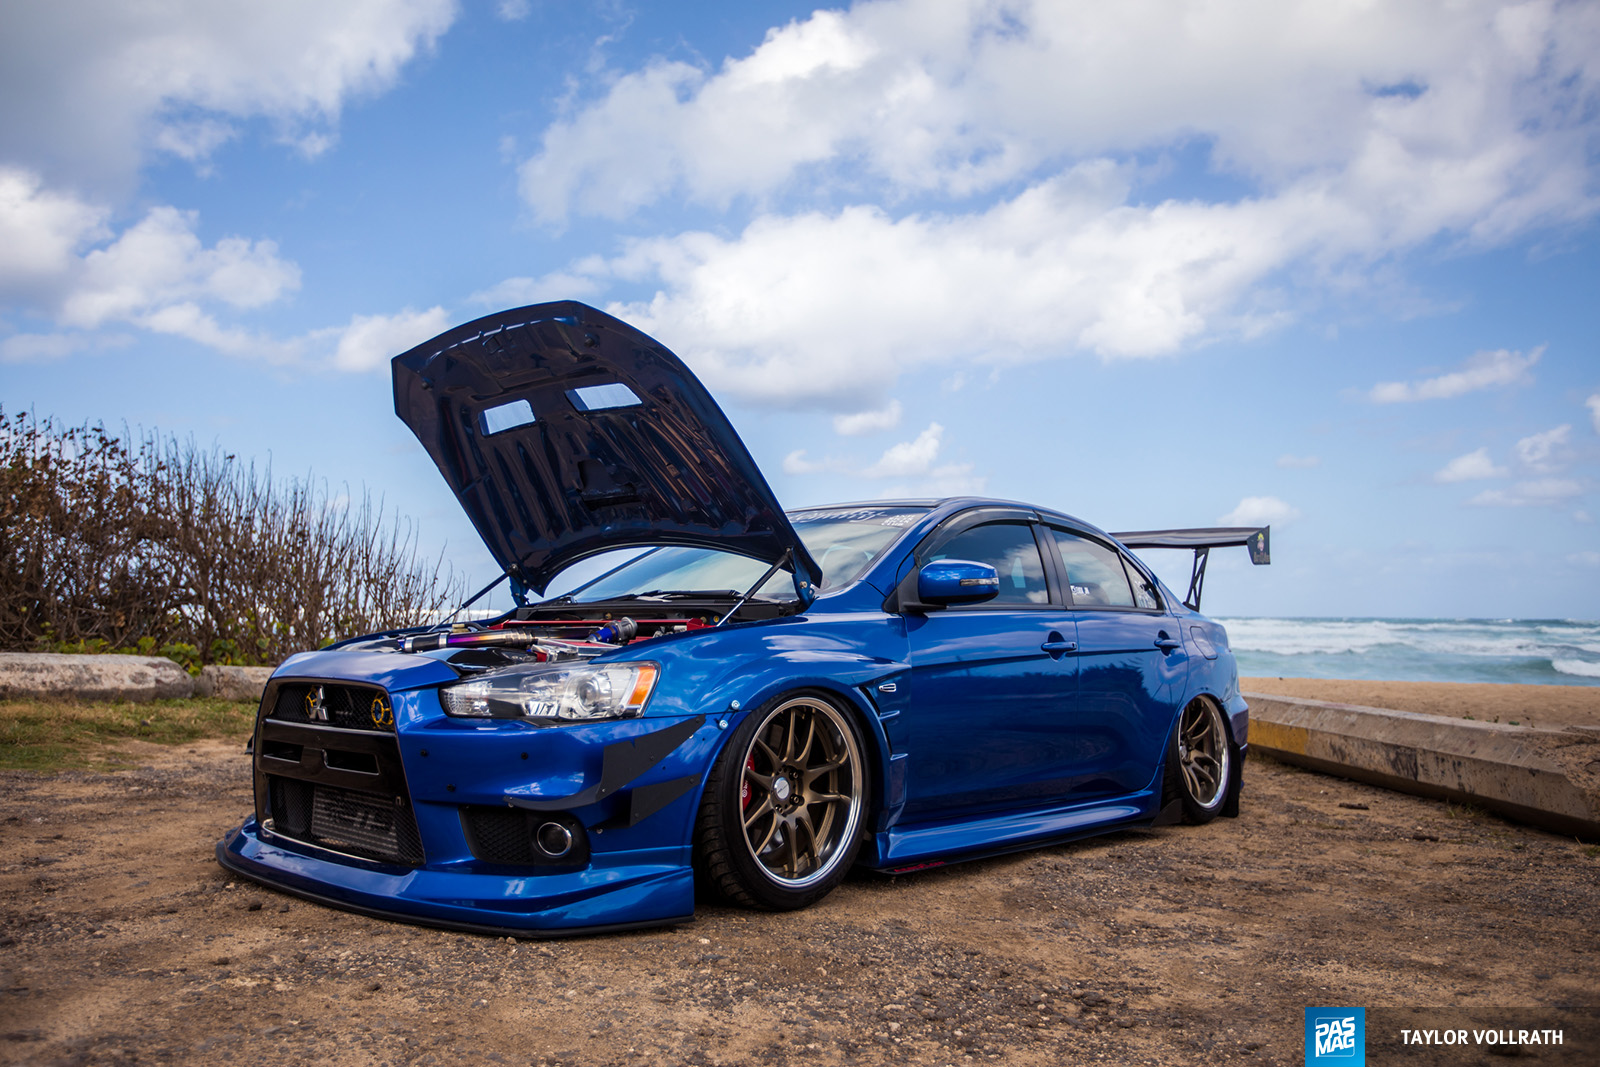 43 JM Andrada 2015 Mitsubishi Evolution X PASMAG Tuner Battlegrounds